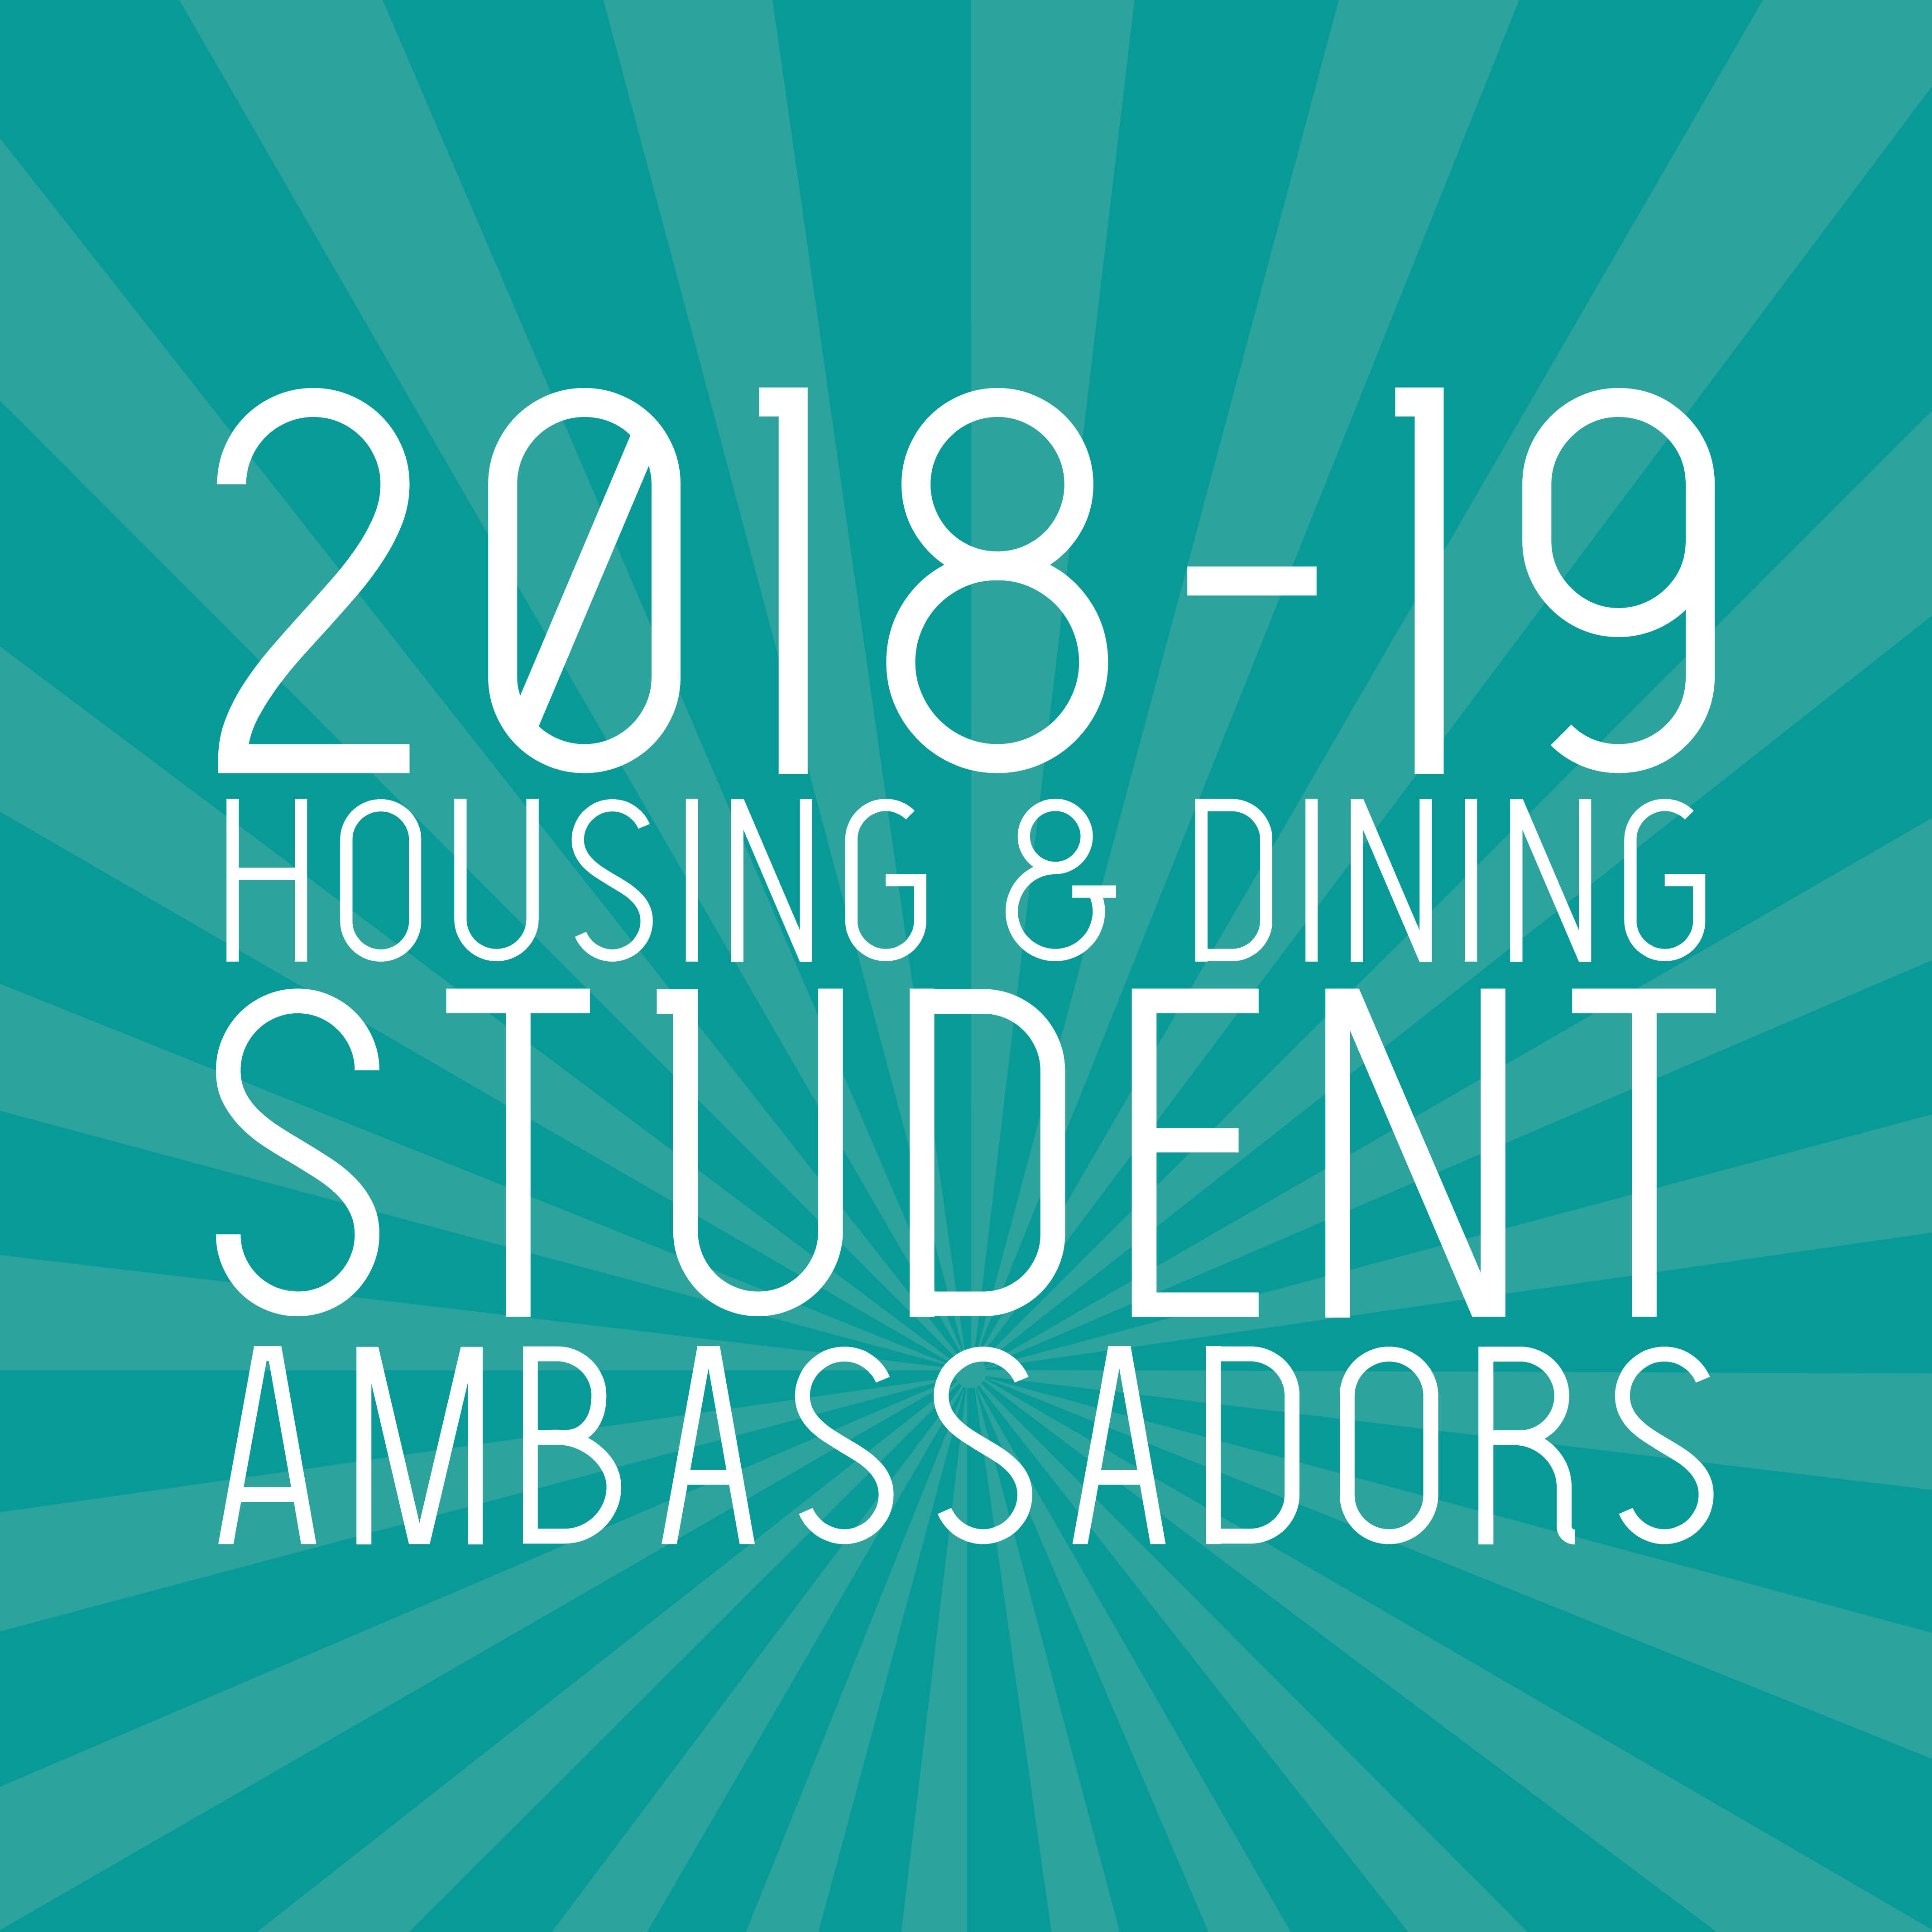 2018-2019 Housing and Dining Student Ambassadors